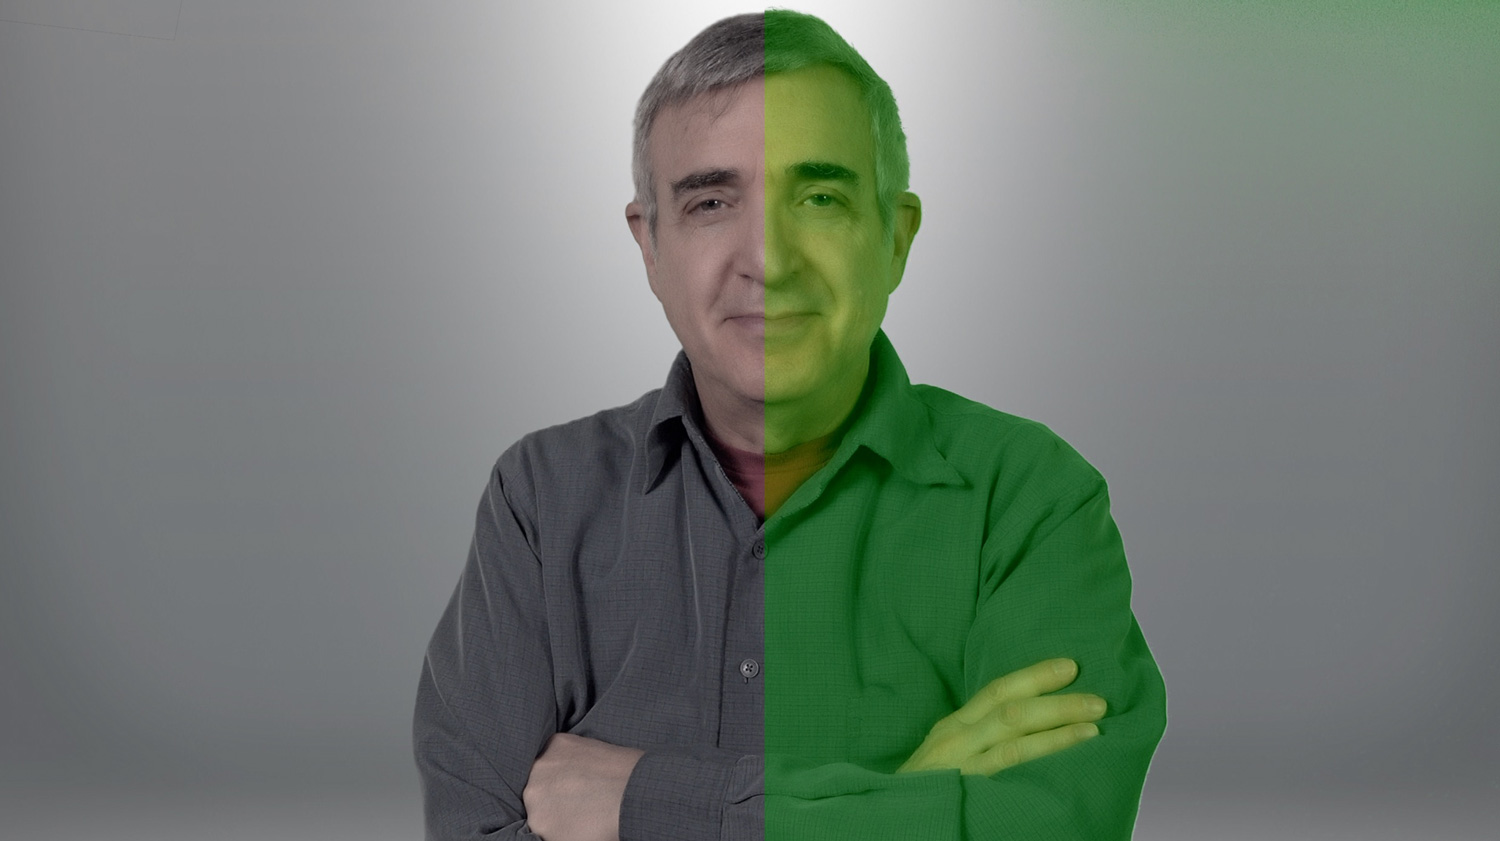 How to Rescue Your Complexion From Green Screen Lighting